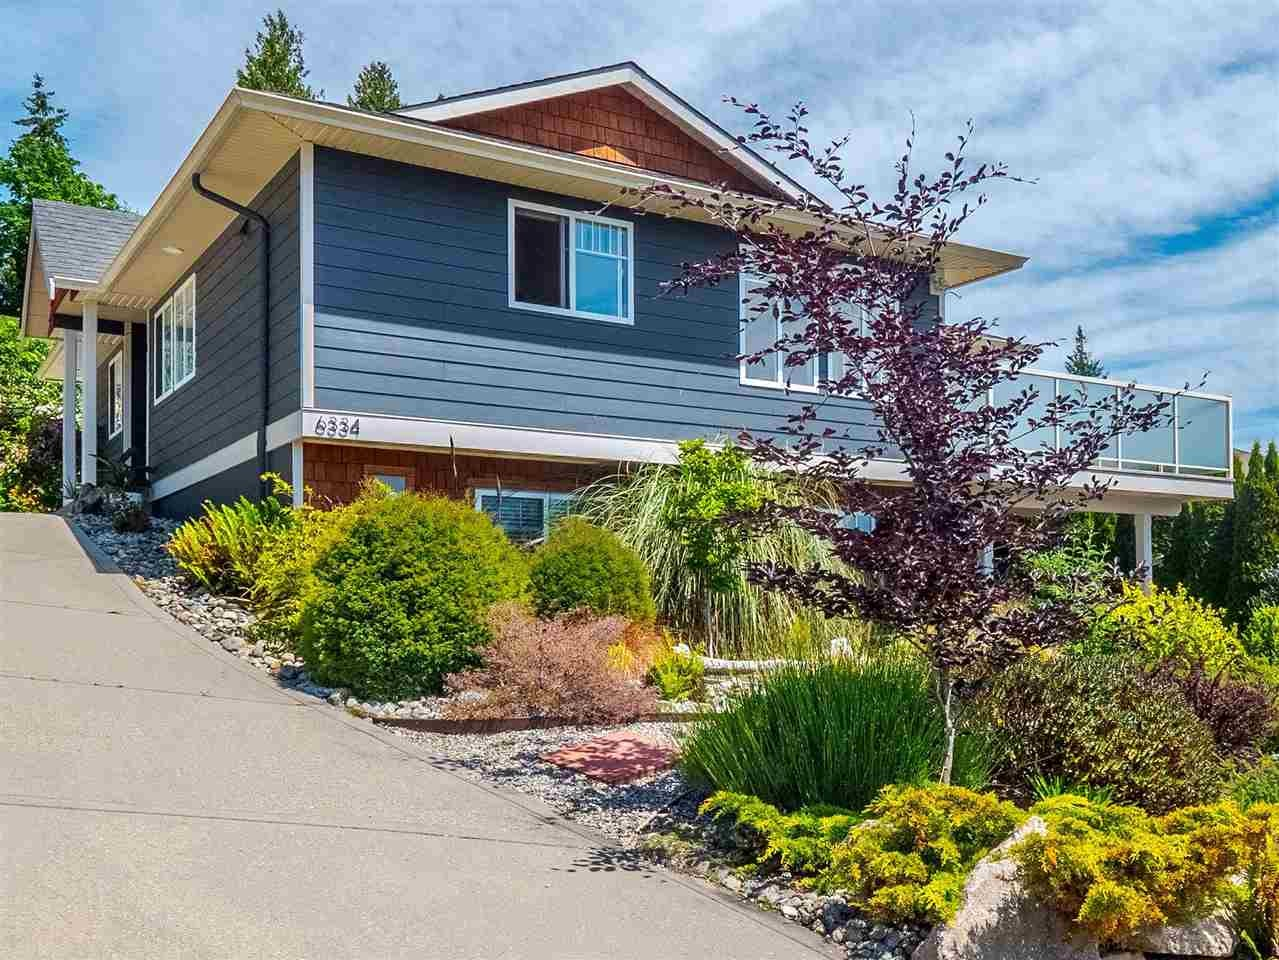 6334 SAMRON ROAD - Sechelt District House/Single Family for sale, 4 Bedrooms (R2589104) - #1